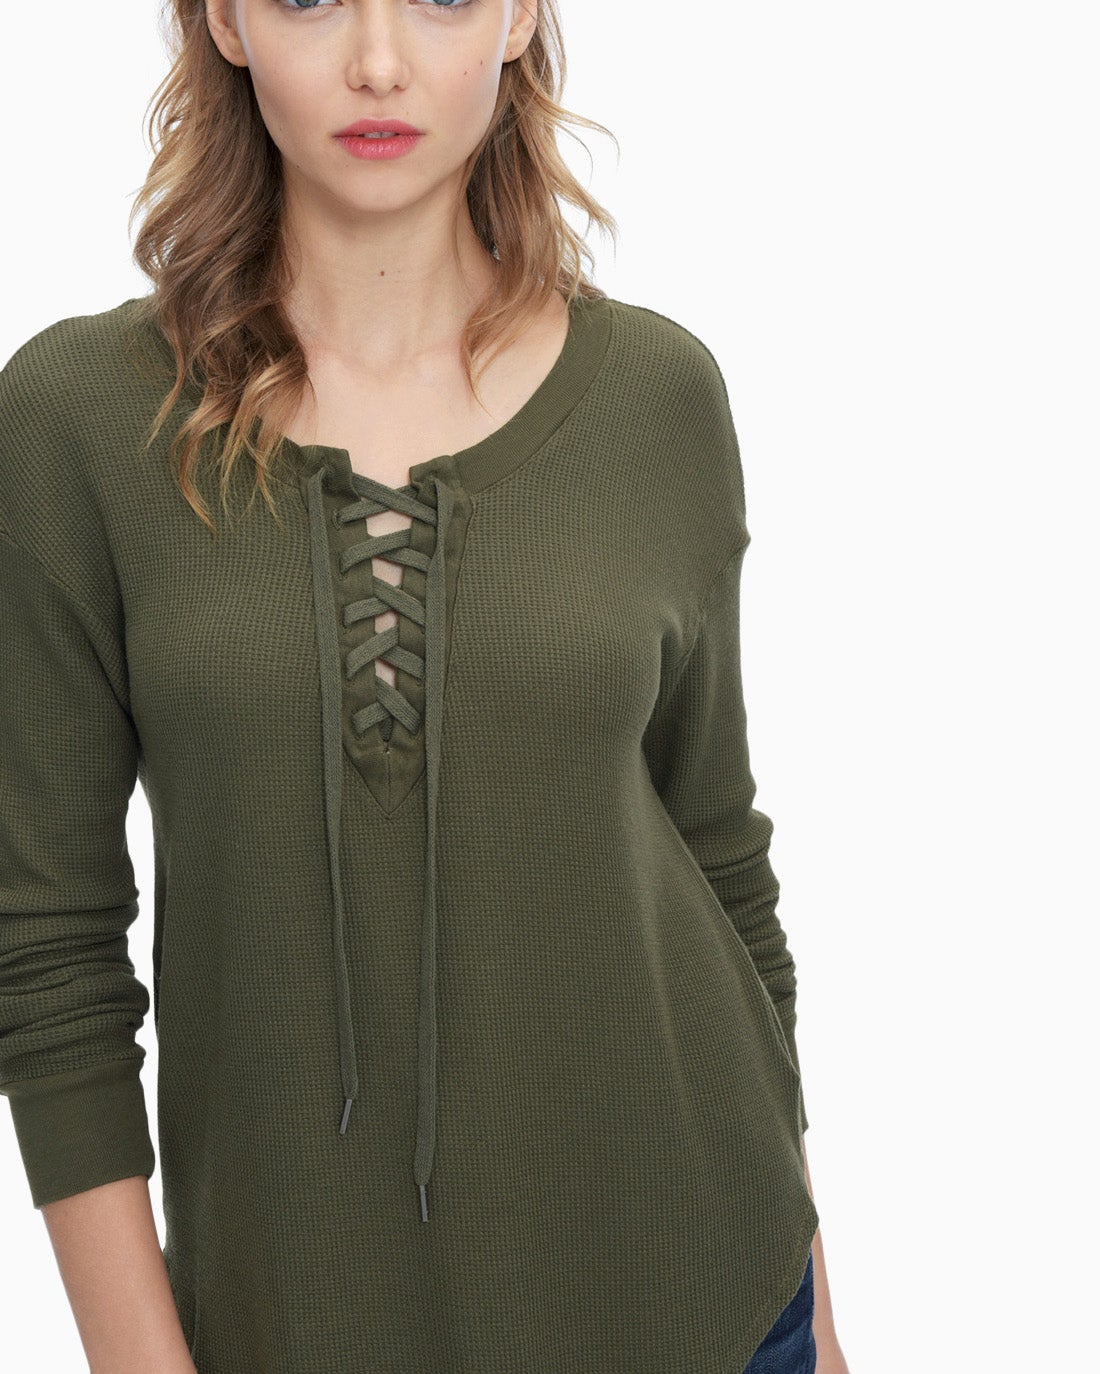 Splendid Women's Thermal Lace Up Tunic